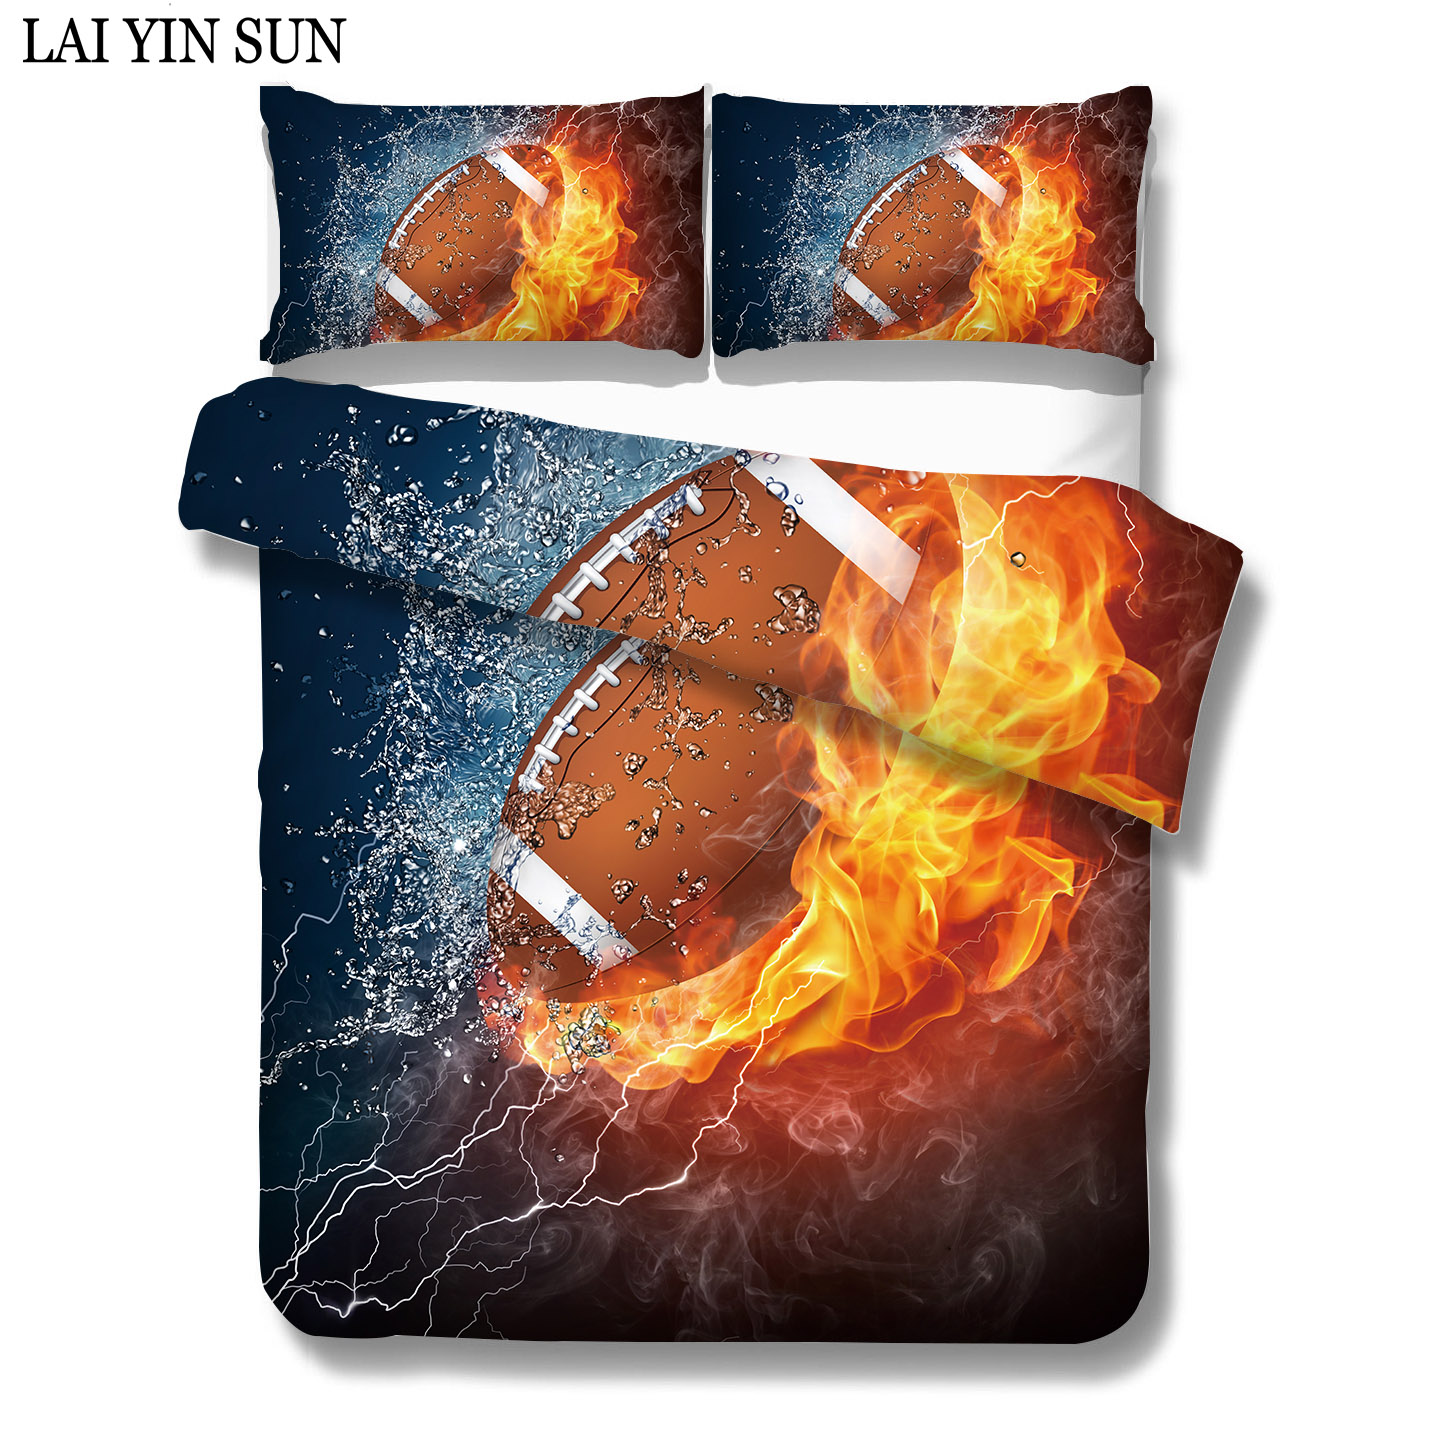 Lai Yin Sun Colored  Rugby fire Bedding Set King Size Luxury Print Bedclothes 3D Universe Duvet Cover 3PCS DropshippingLai Yin Sun Colored  Rugby fire Bedding Set King Size Luxury Print Bedclothes 3D Universe Duvet Cover 3PCS Dropshipping